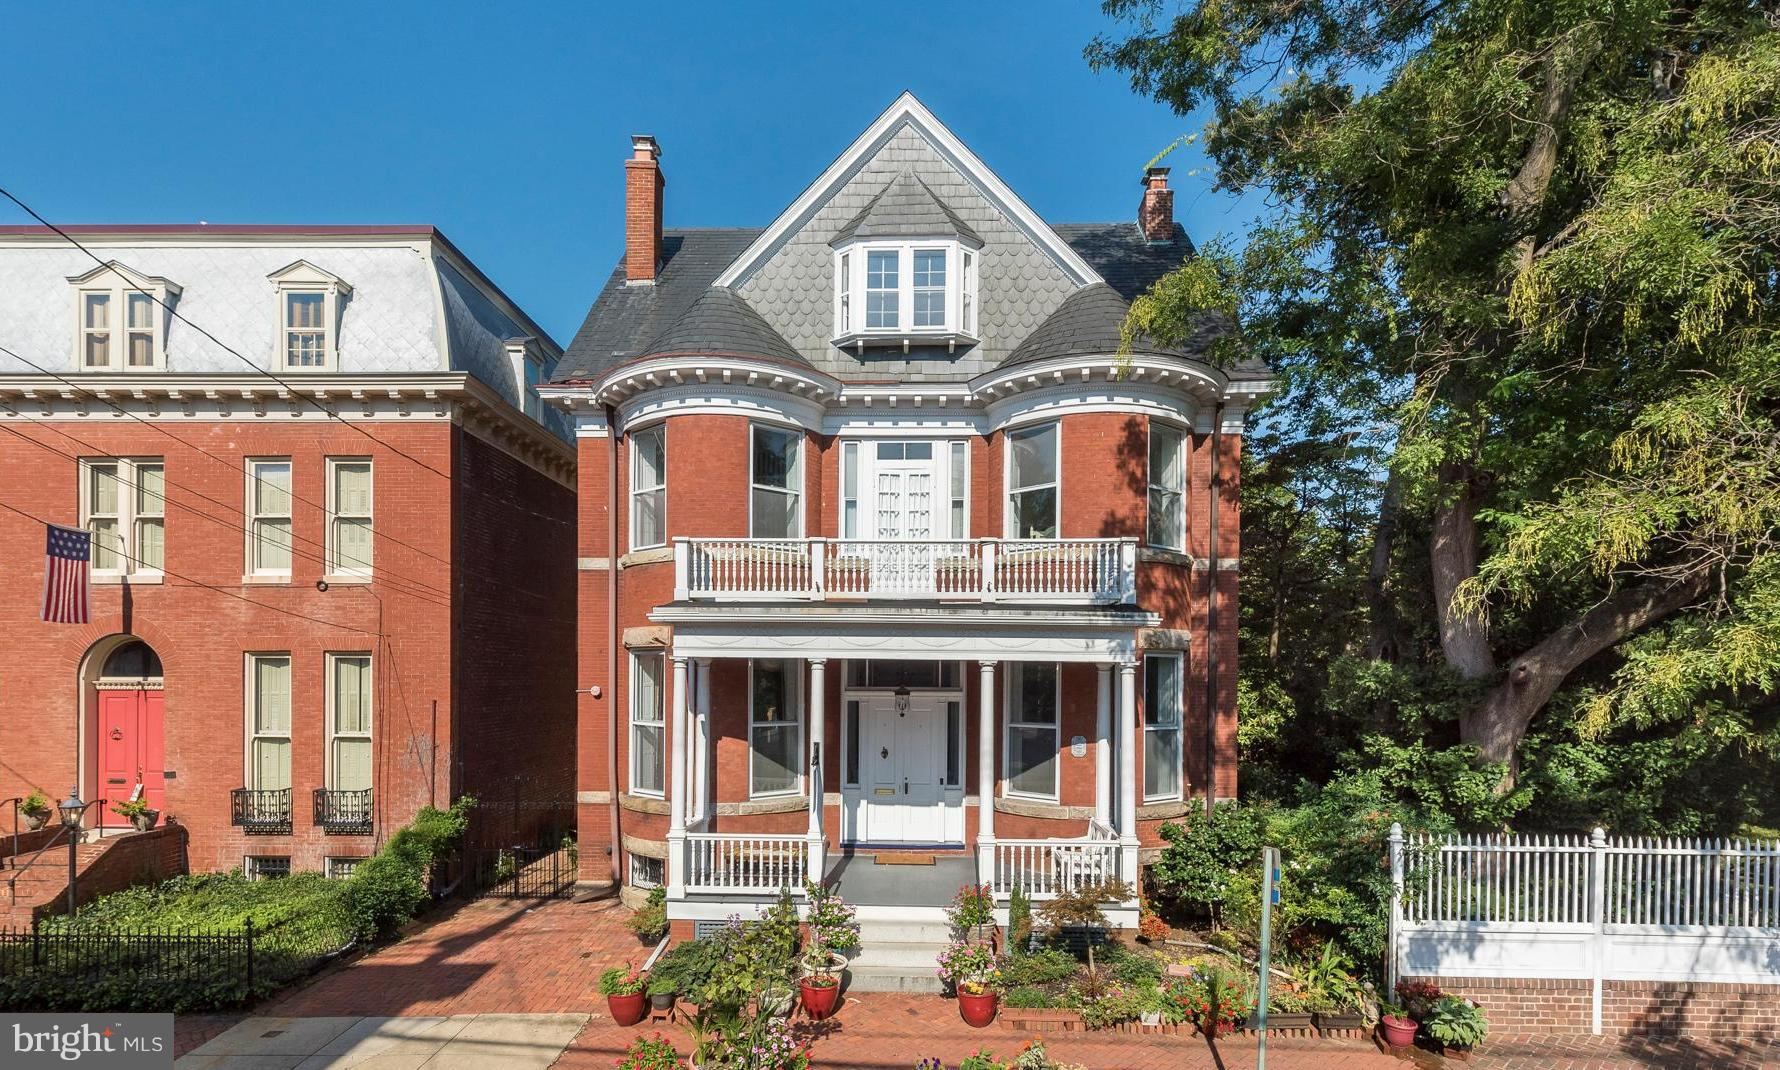 30 MARYLAND AVENUE, ANNAPOLIS, MD 21401